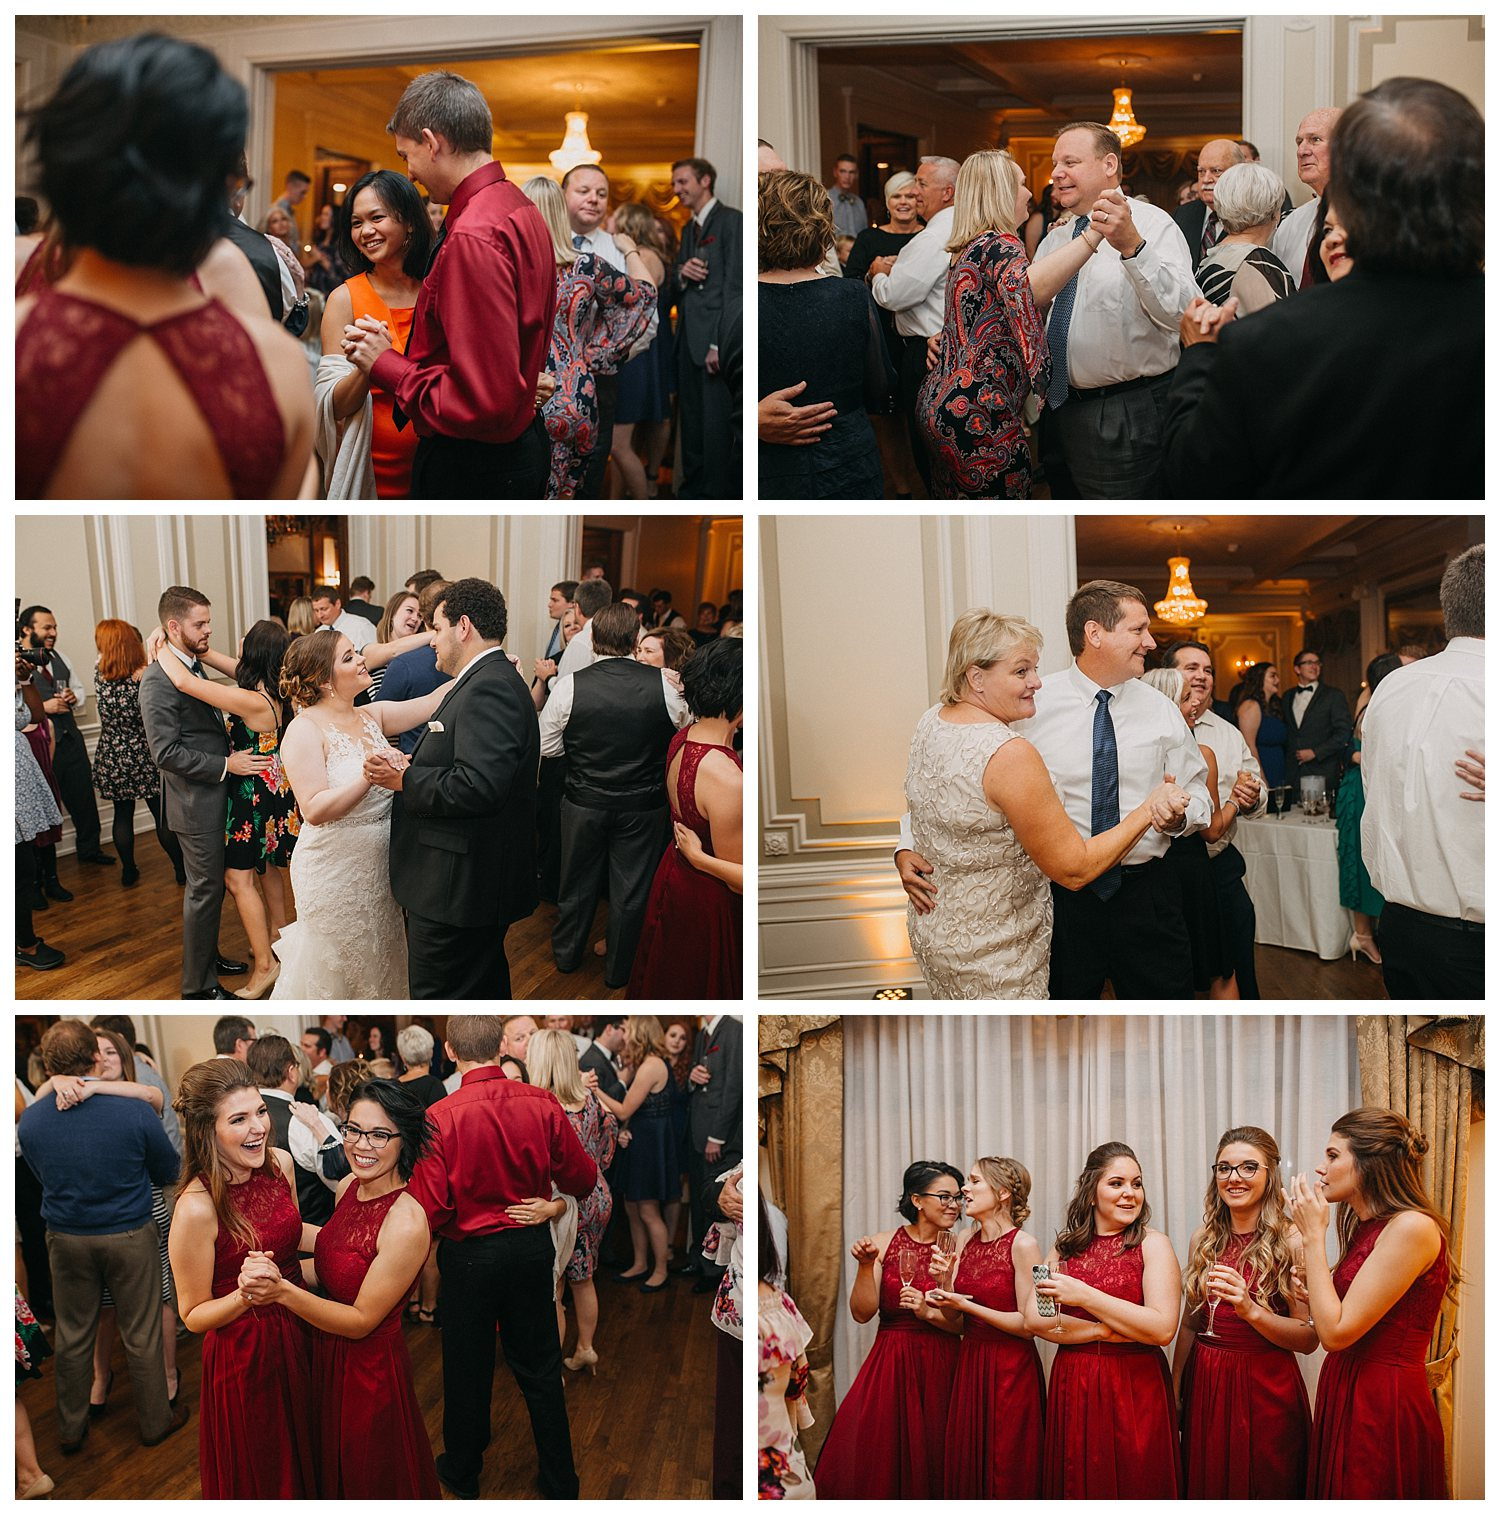 Kelsey_Diane_Photography_Loose_Mansion_Wedding_Photography_Kansas_City_Victor_Lyndsay_0171.jpg